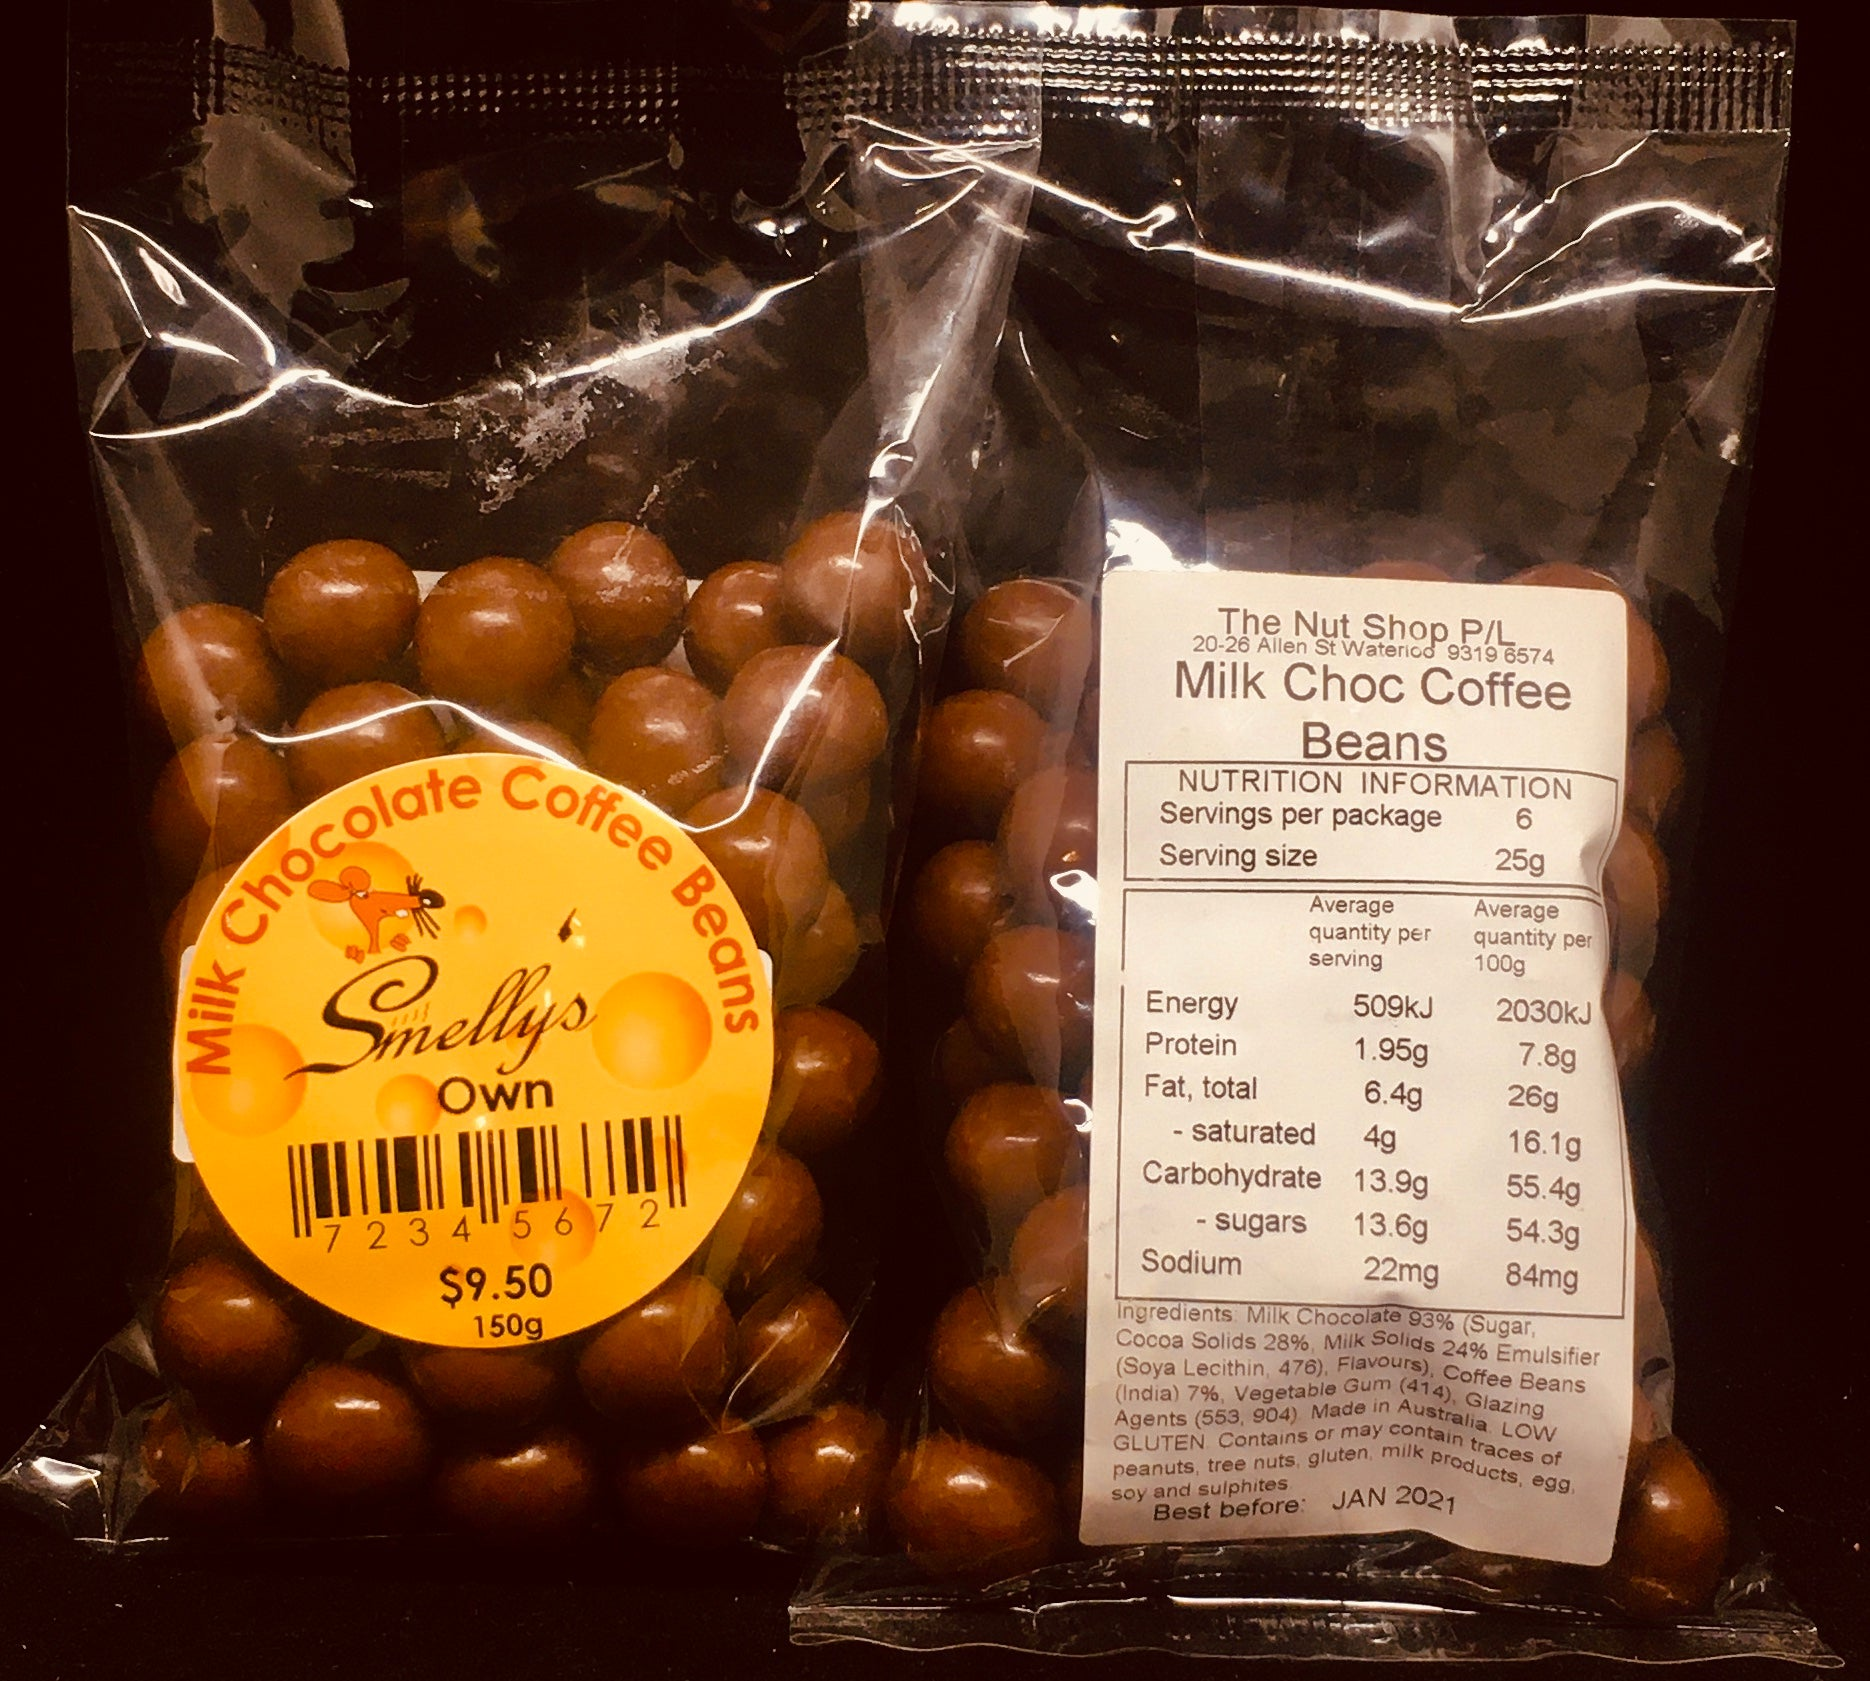 Smelly's Own - Milk Chocolate Coffee Beans